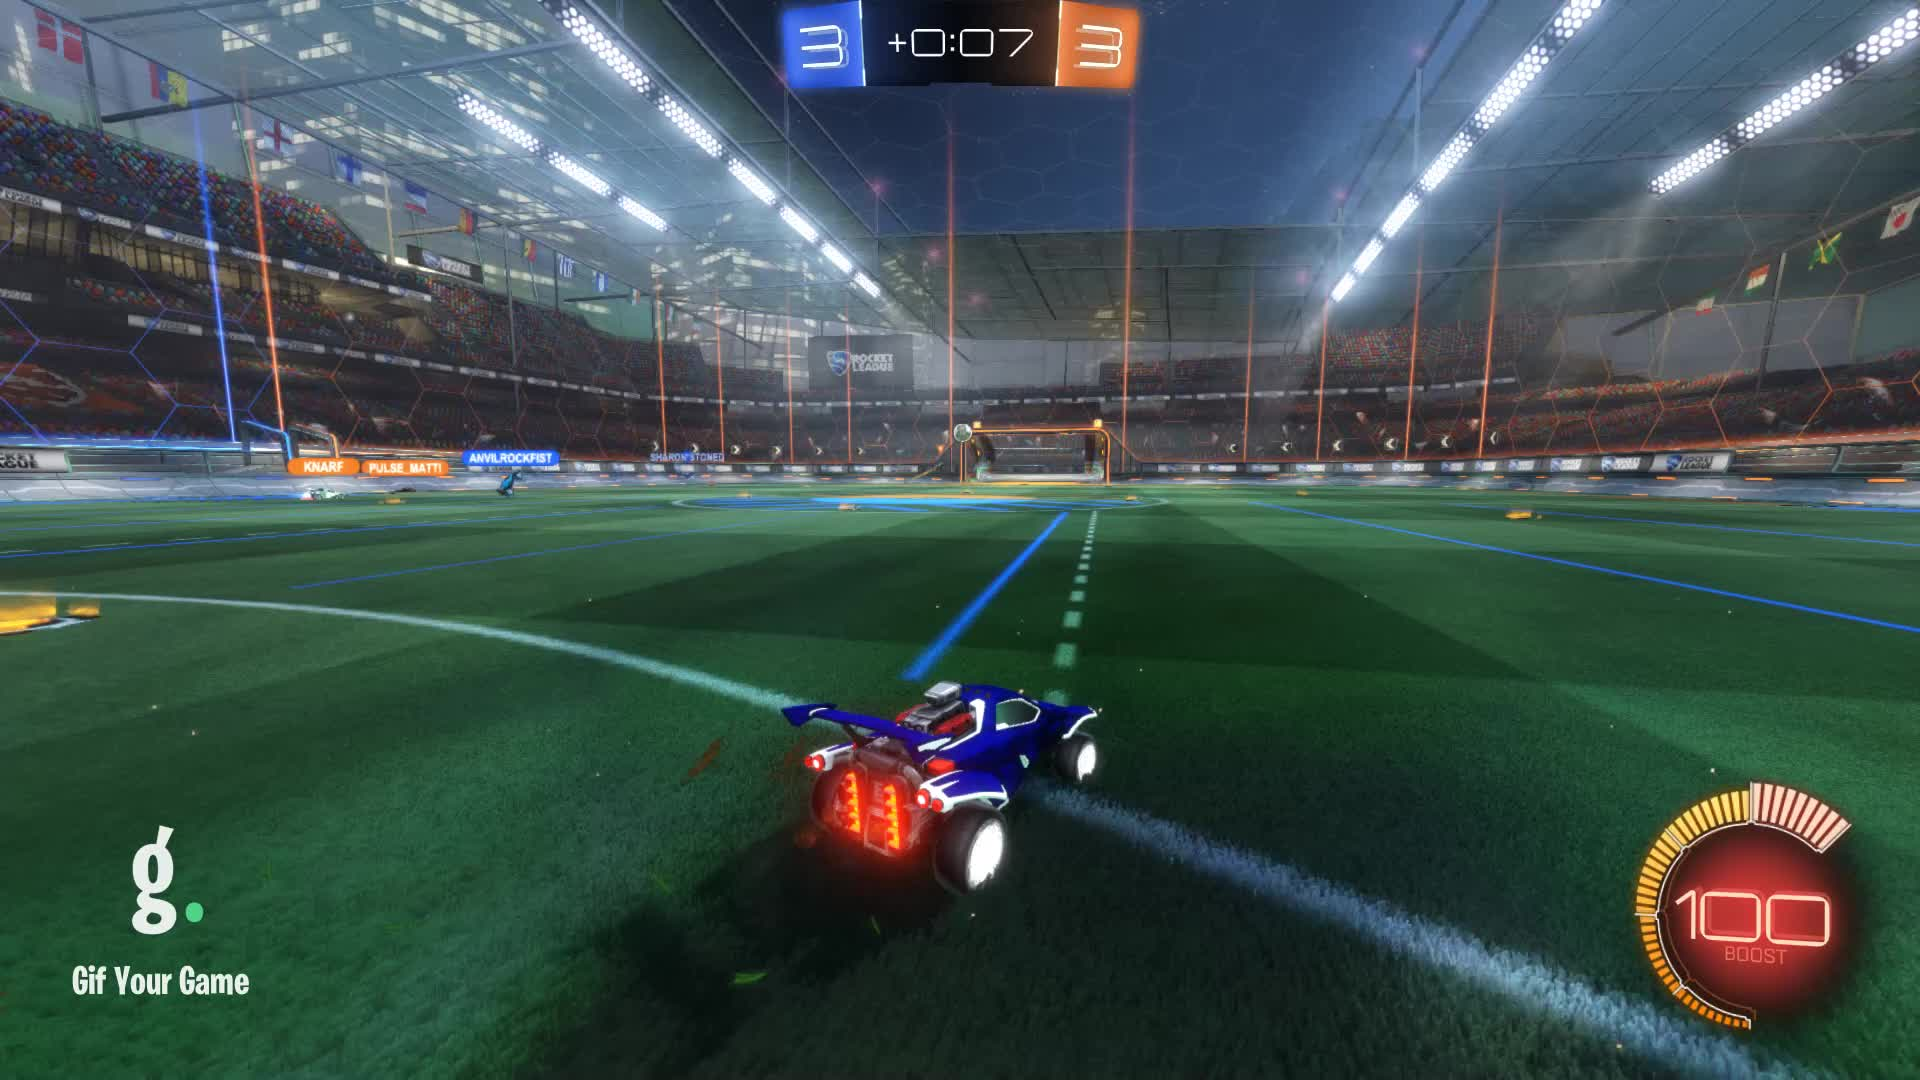 Gif Your Game, GifYourGame, Goal, Horizon, Rocket League, RocketLeague, Goal 7: Horizon GIFs